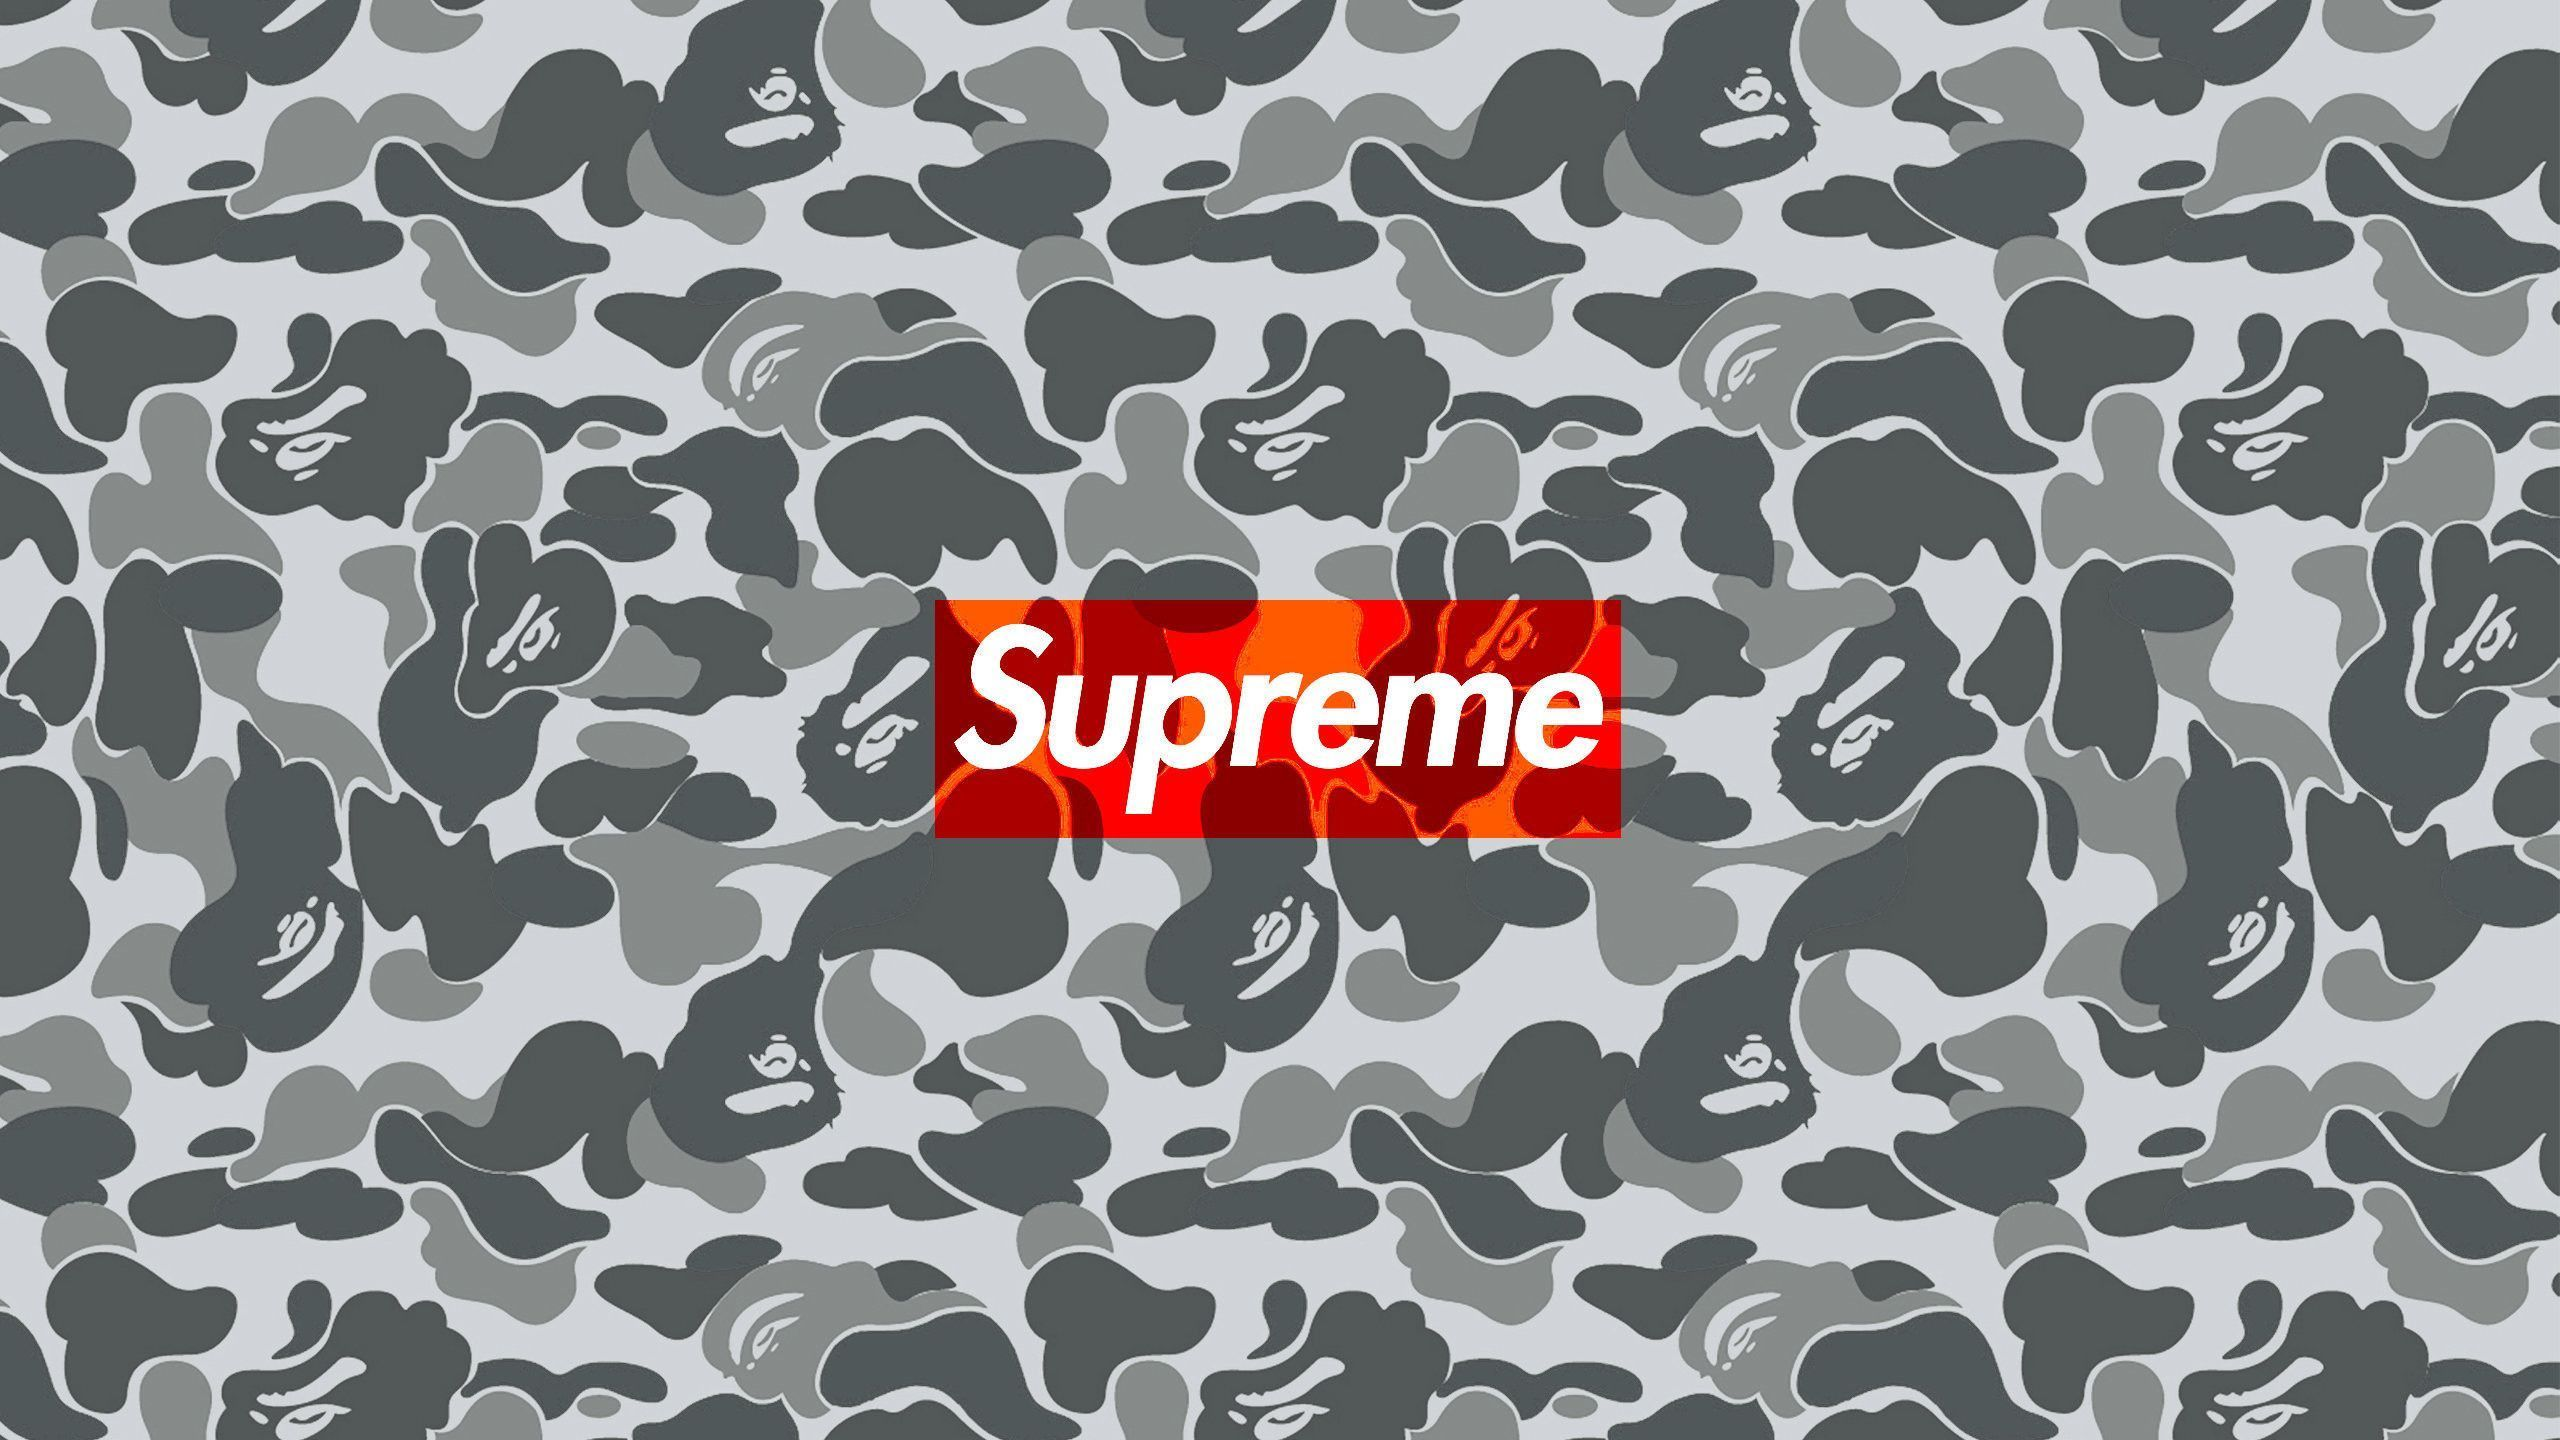 2560x1440 Download The Supreme Bape Camo Wallpaper Below For Your Mobile Device Android Phones Iphone Etc Bape Wallpapers Camo Wallpaper Supreme Wallpaper